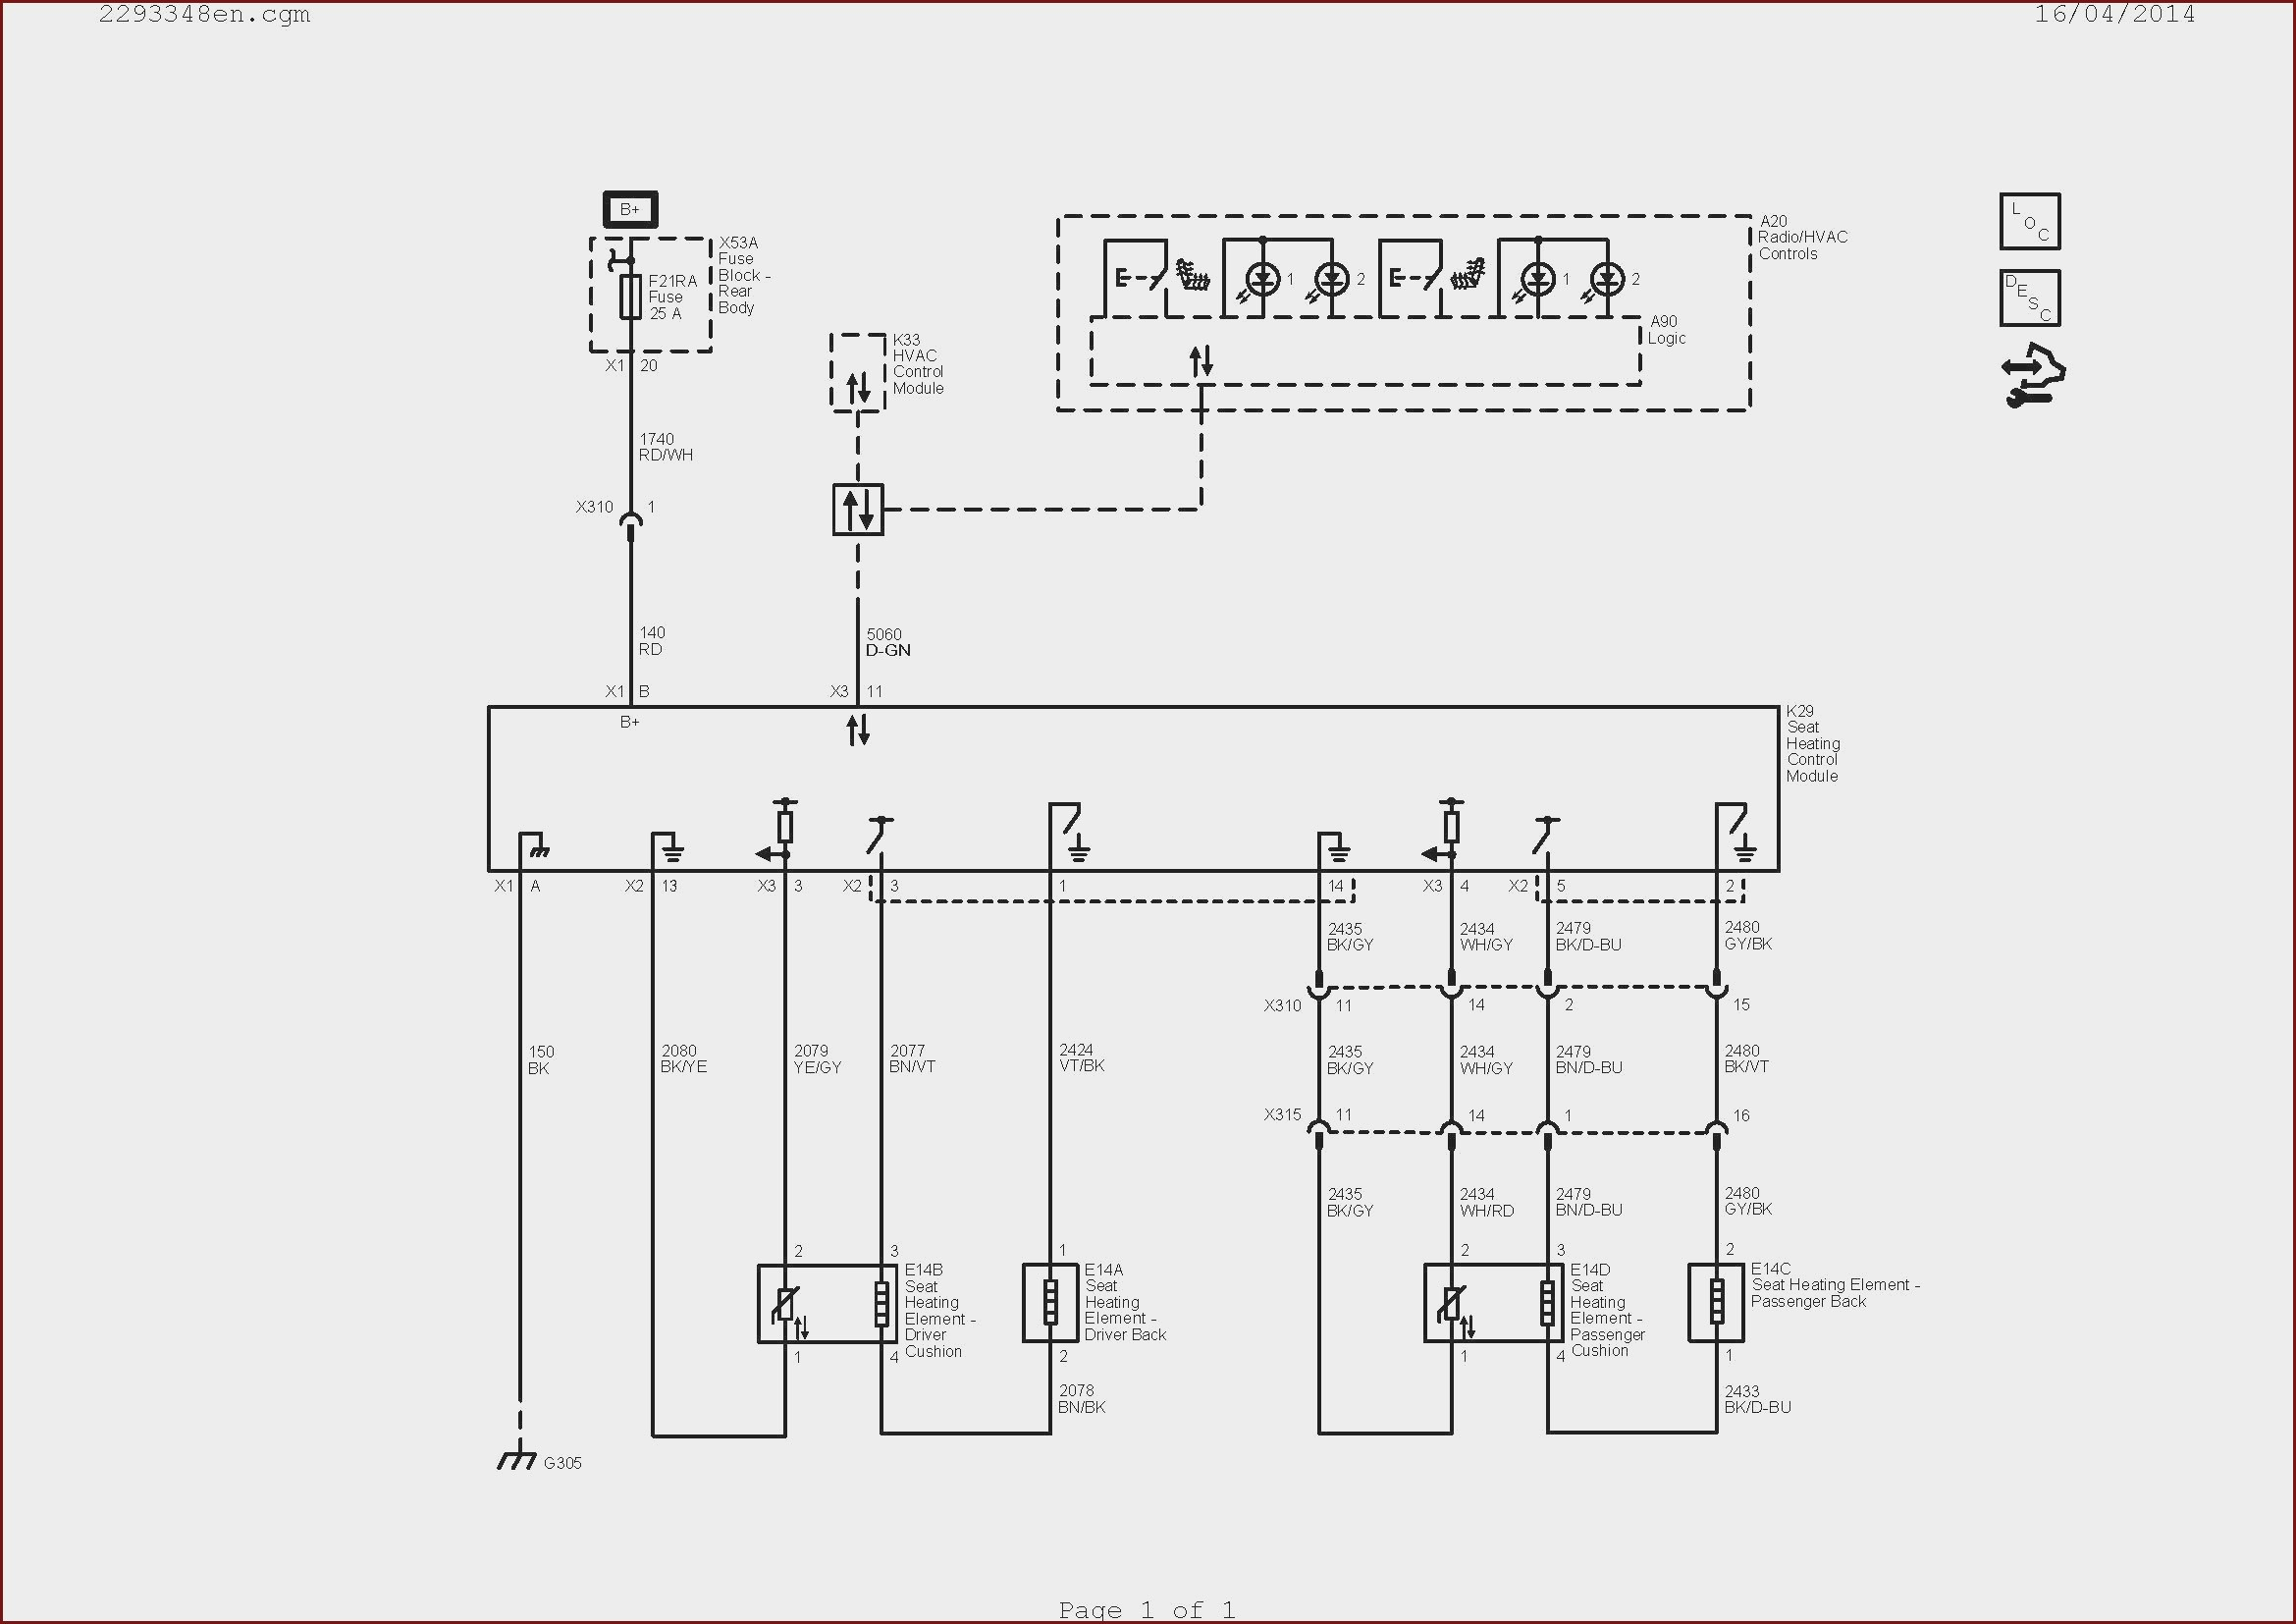 Airplane Engine Diagram Nest 3rd Generation Wiring Diagram S Plan at Manuals Library Of Airplane Engine Diagram